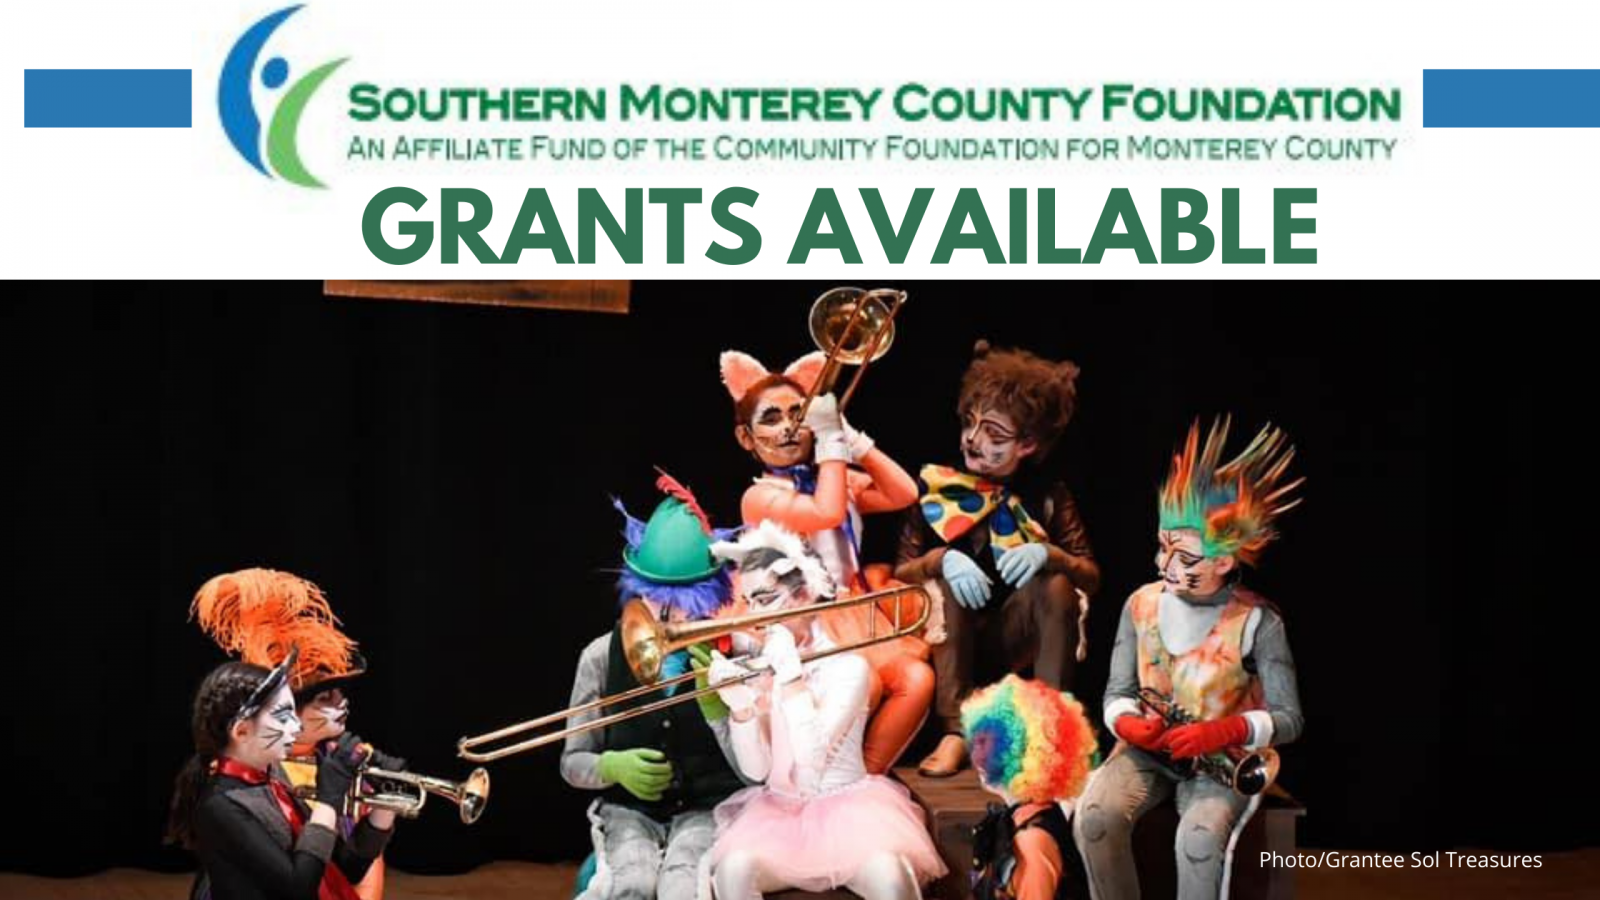 Grants Available from the Southern Monterey County Foundation